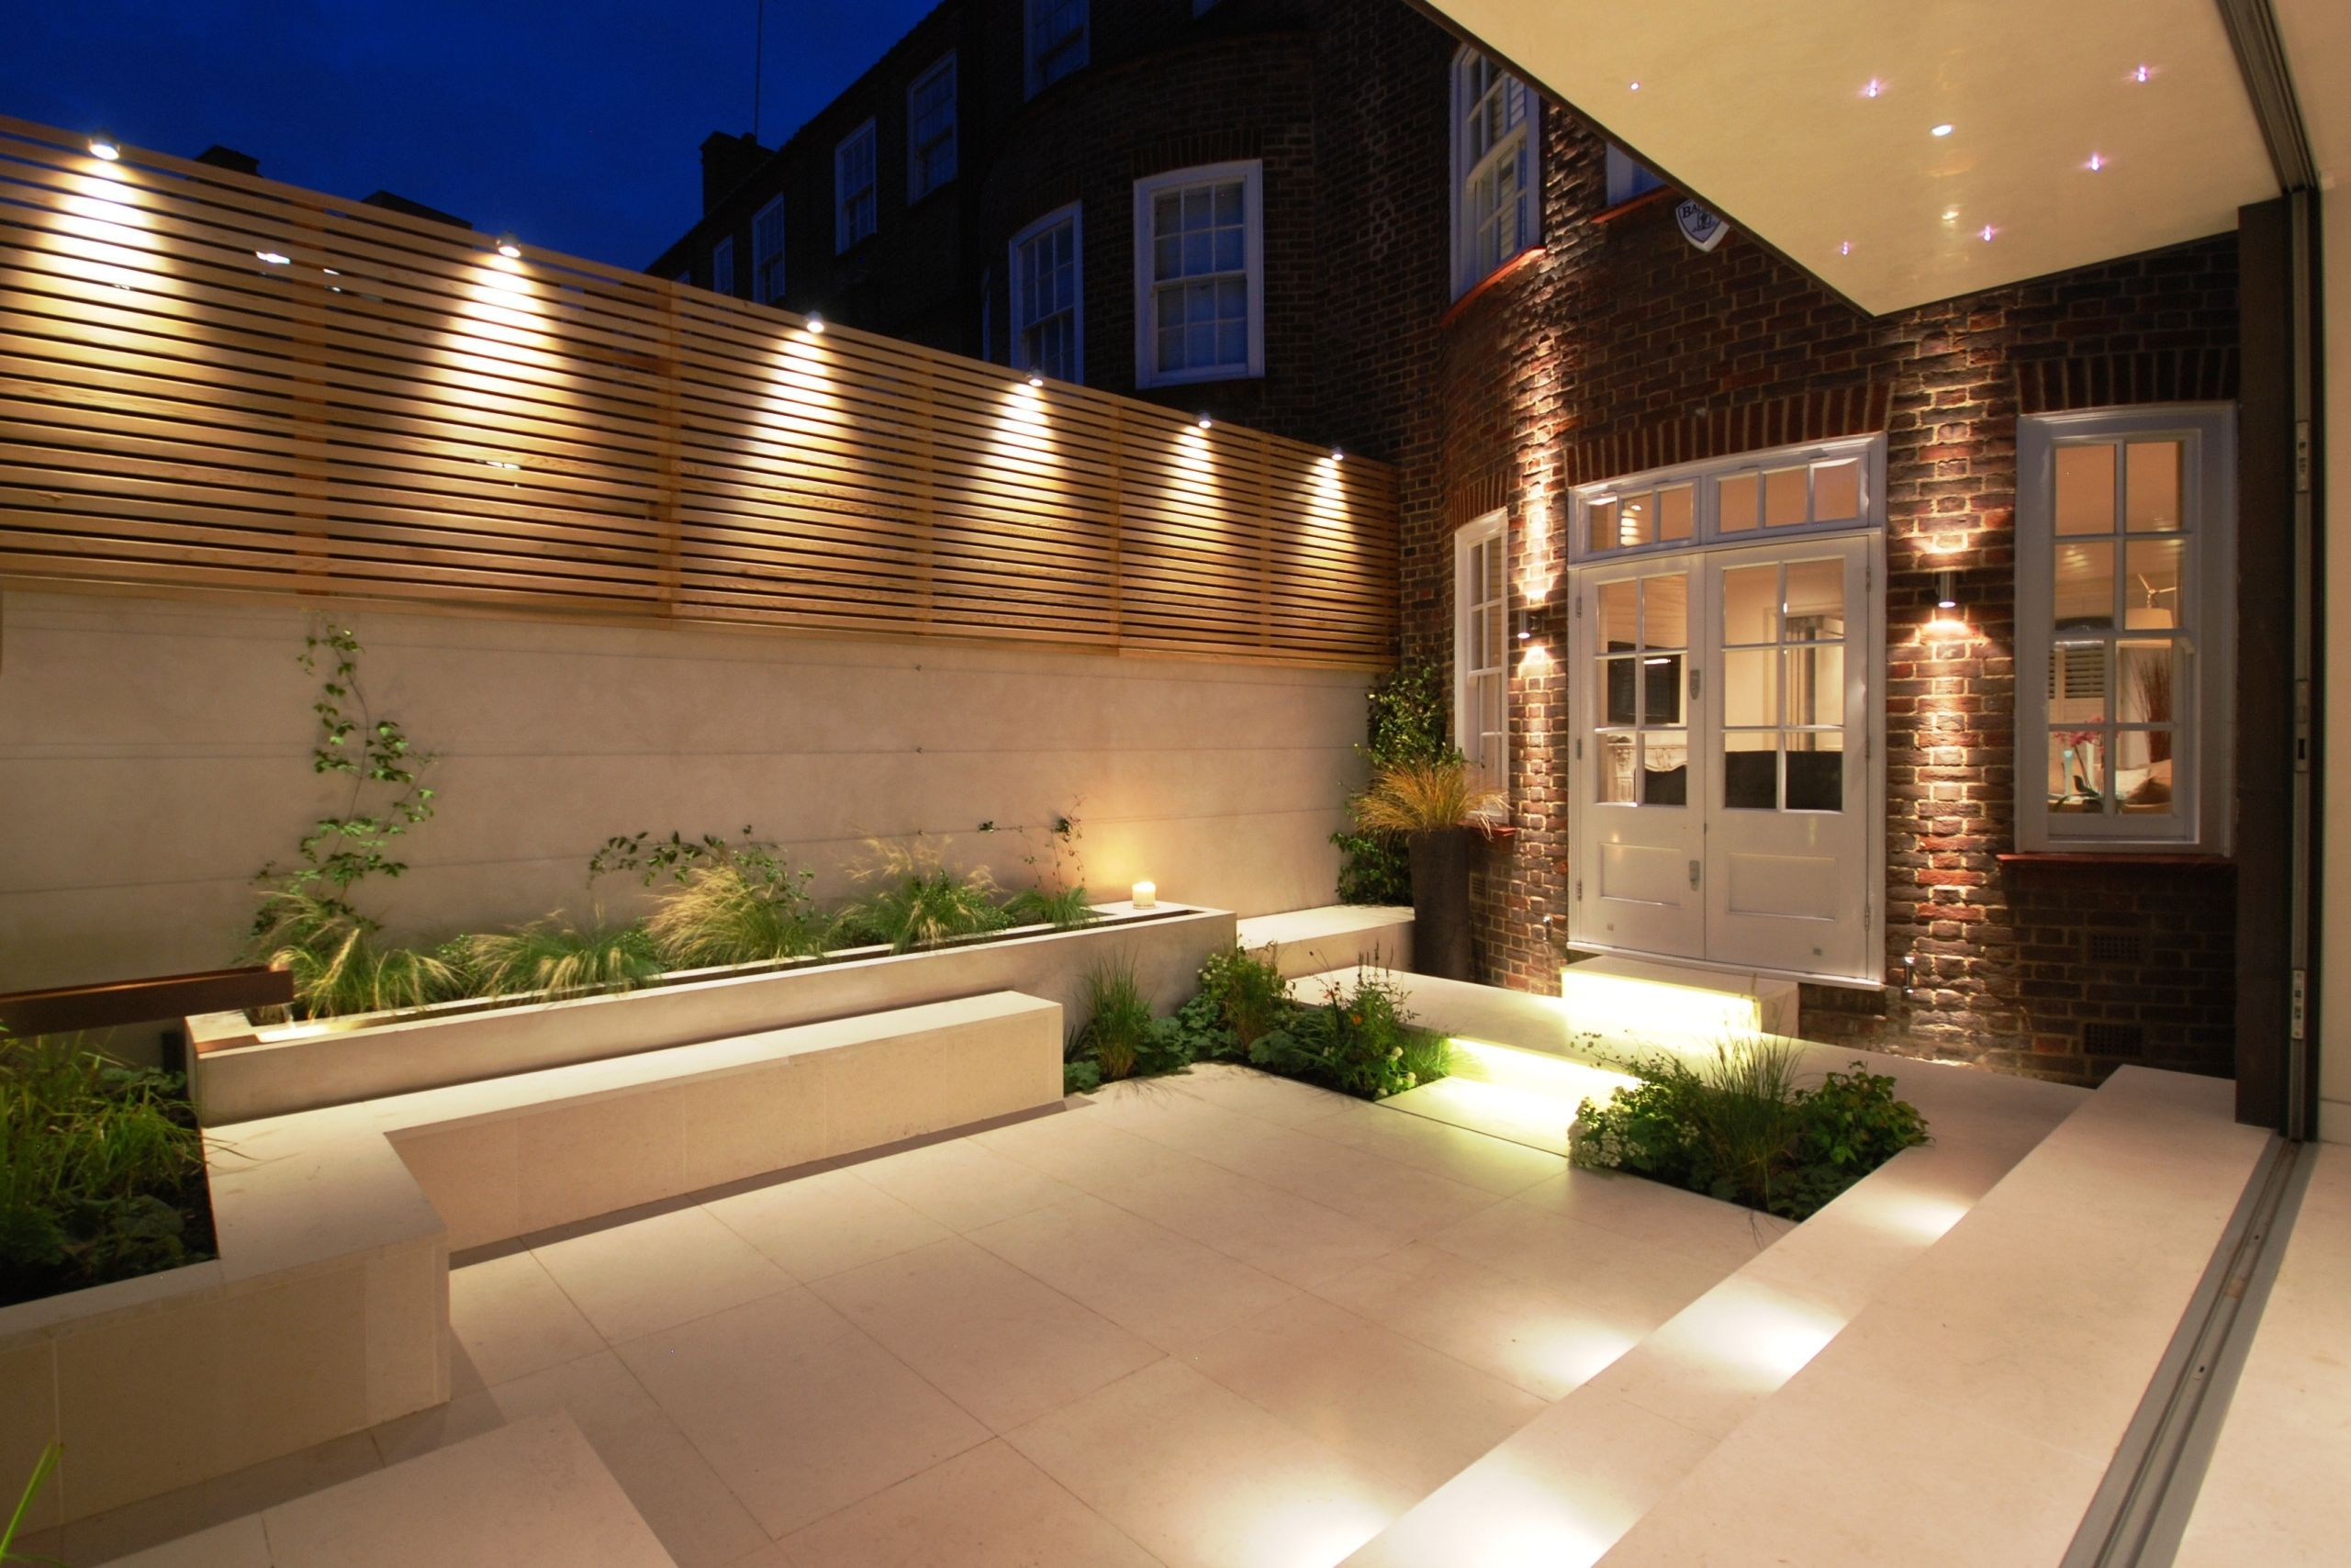 47 Advanced Minimalist Garden And Exterior Ideas With Images